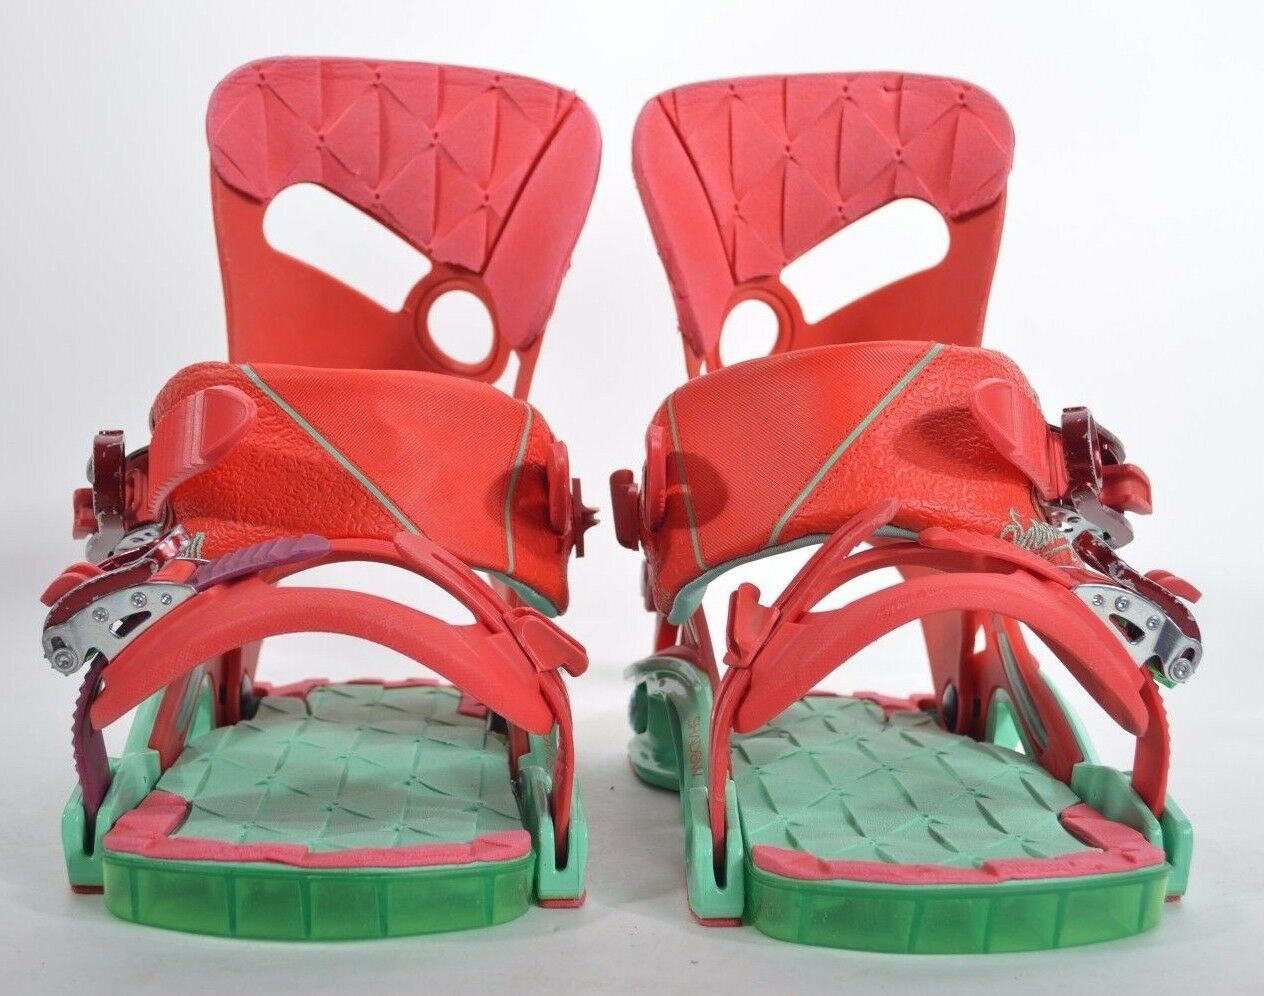 2016 WOMENS SALOMON MIRAGE SNOWBOARD BINDINGS   278 S red turquoise flexible USED  new sadie